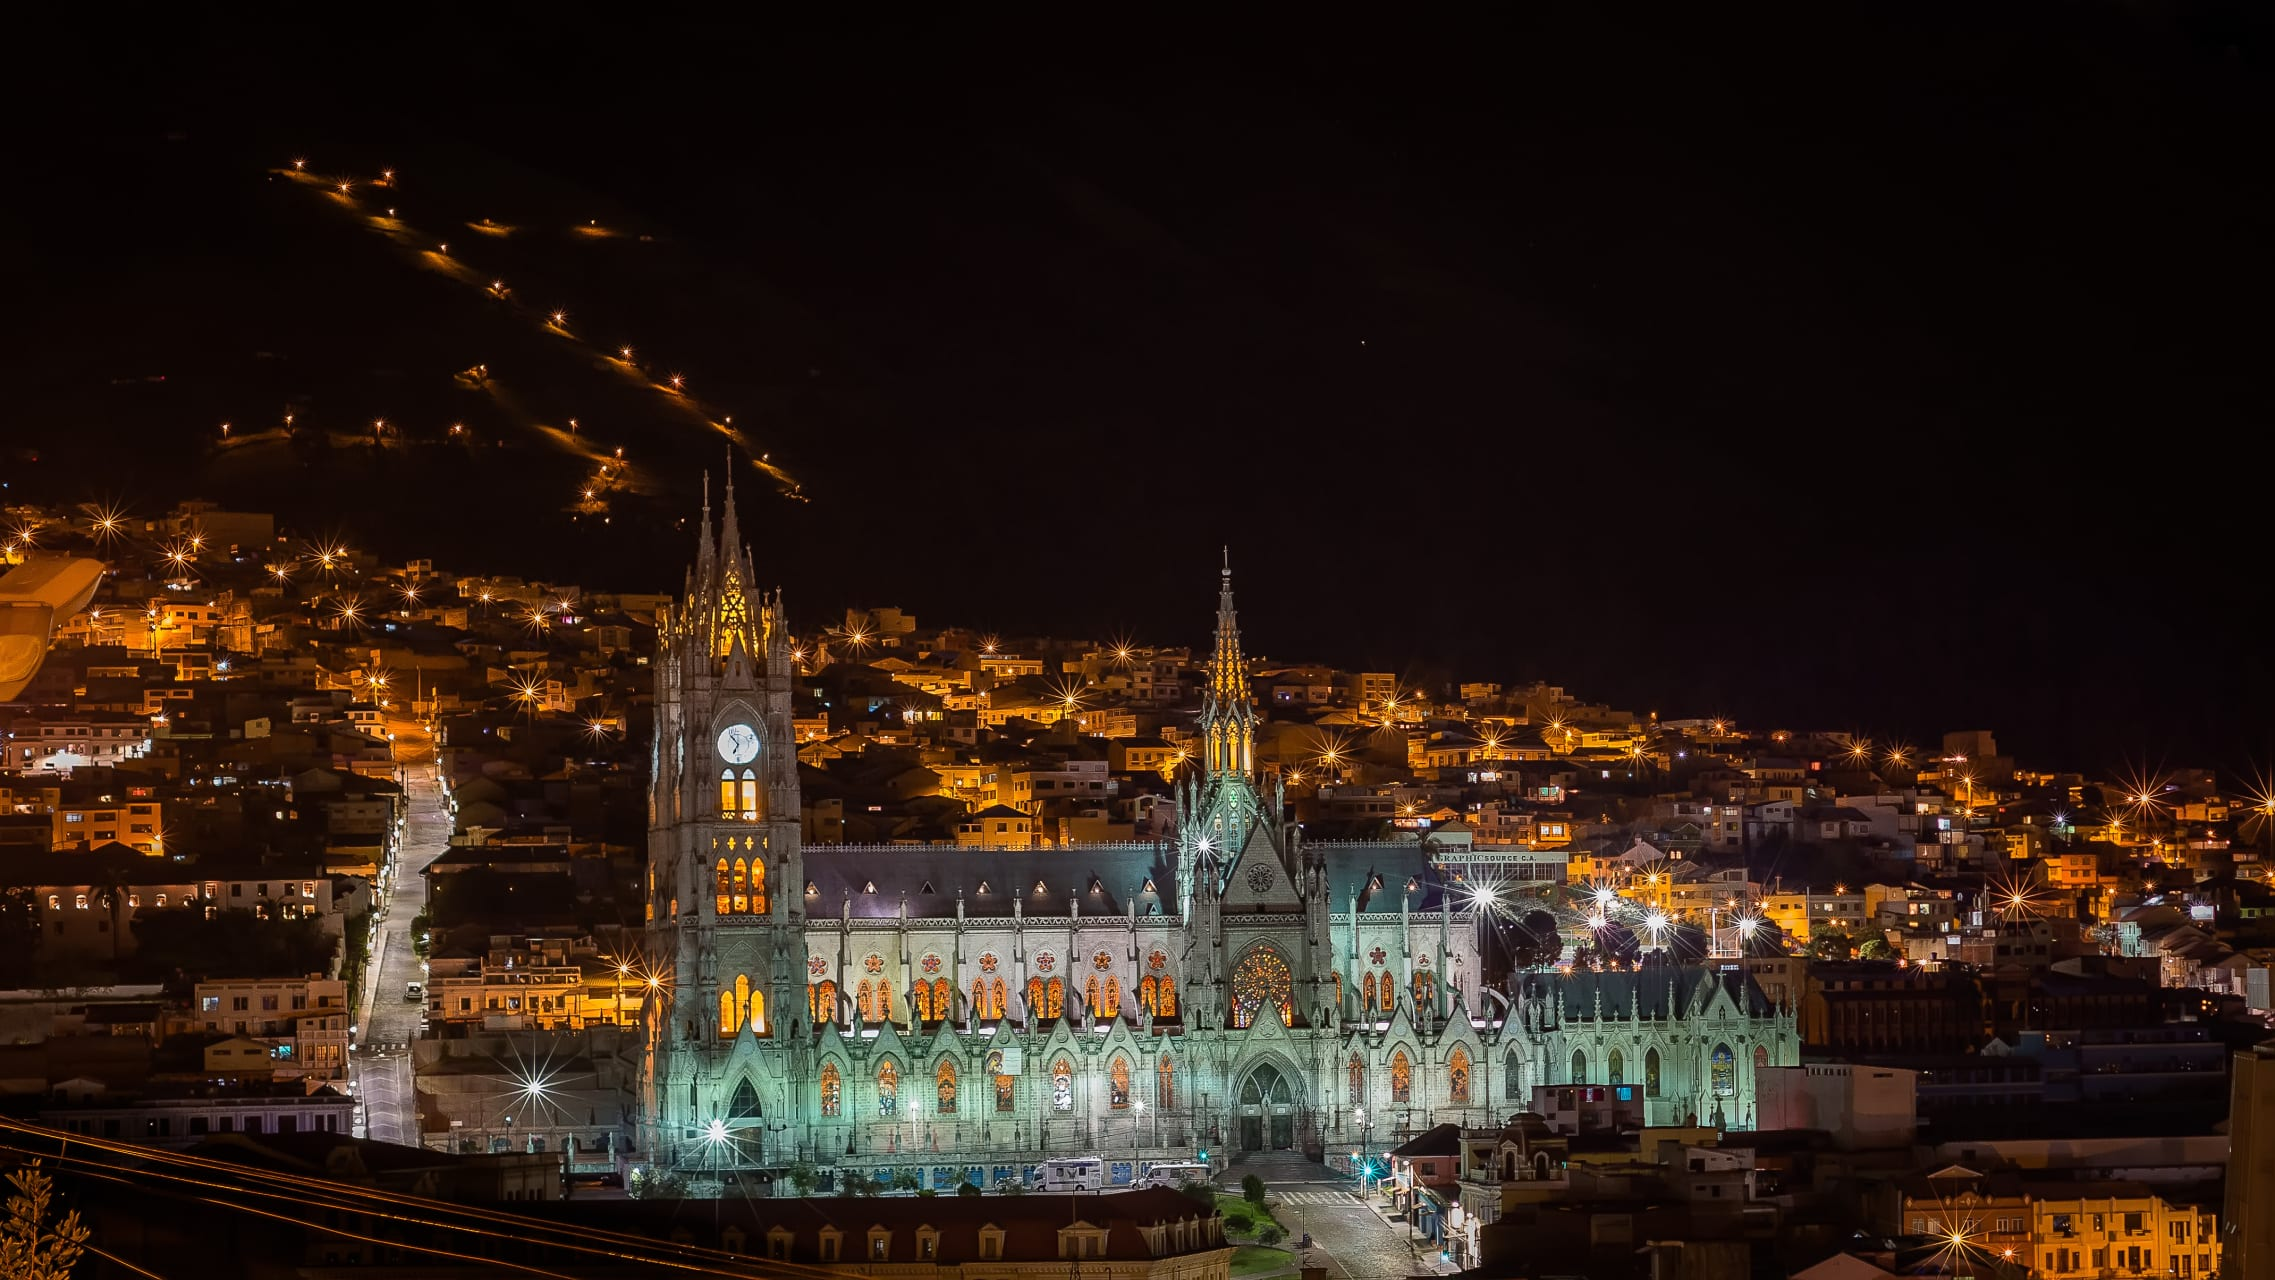 Quito - Quito By Night - Old City- First city declared cultural heritage by UNESCO